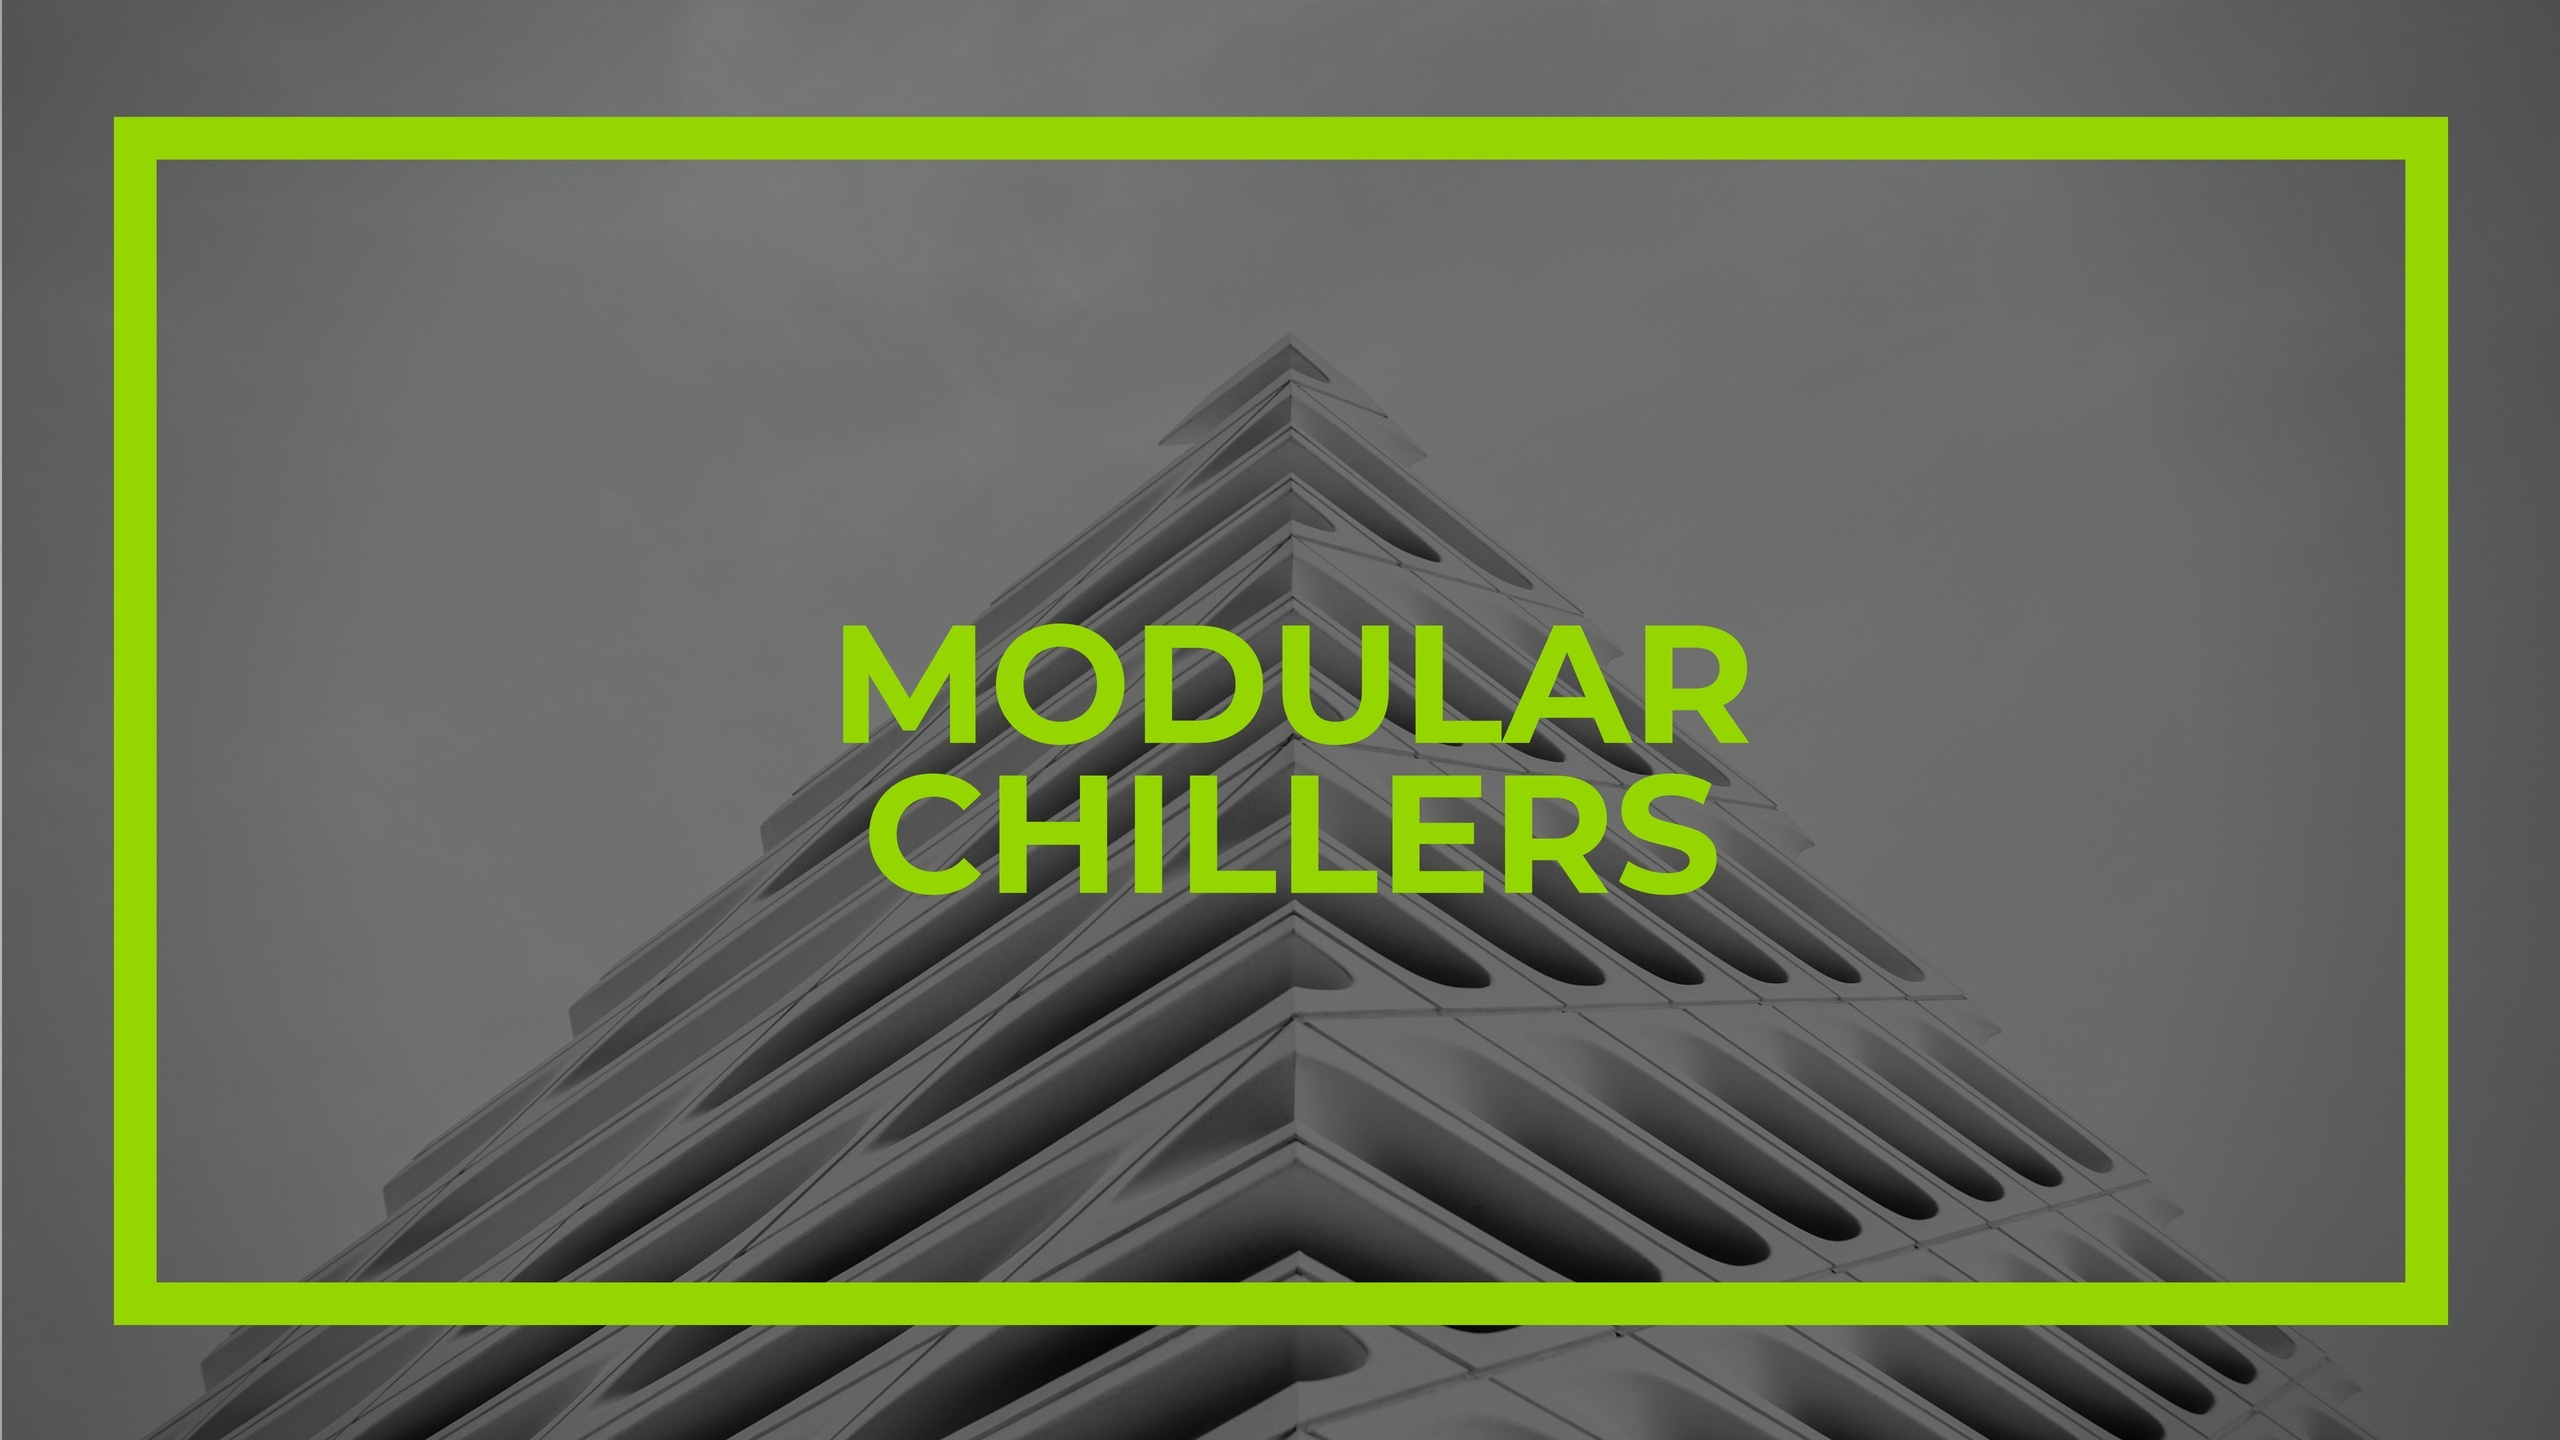 About Aermec Modular Chillers